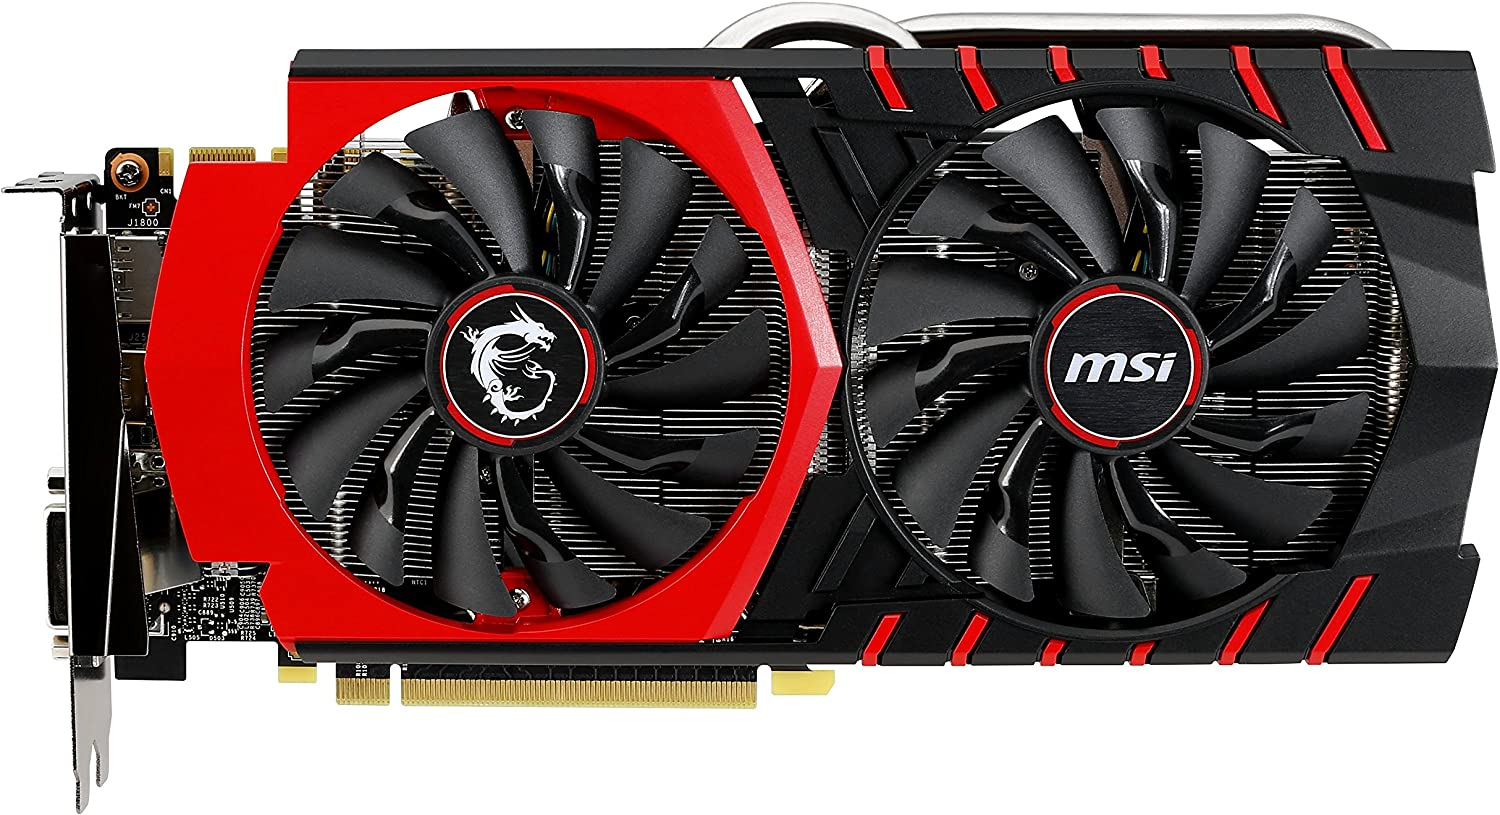 MSI Armor 2X GeForce GTX 970 4GB OC DirectX 12 VR Ready GTX 970 4GD5T OC